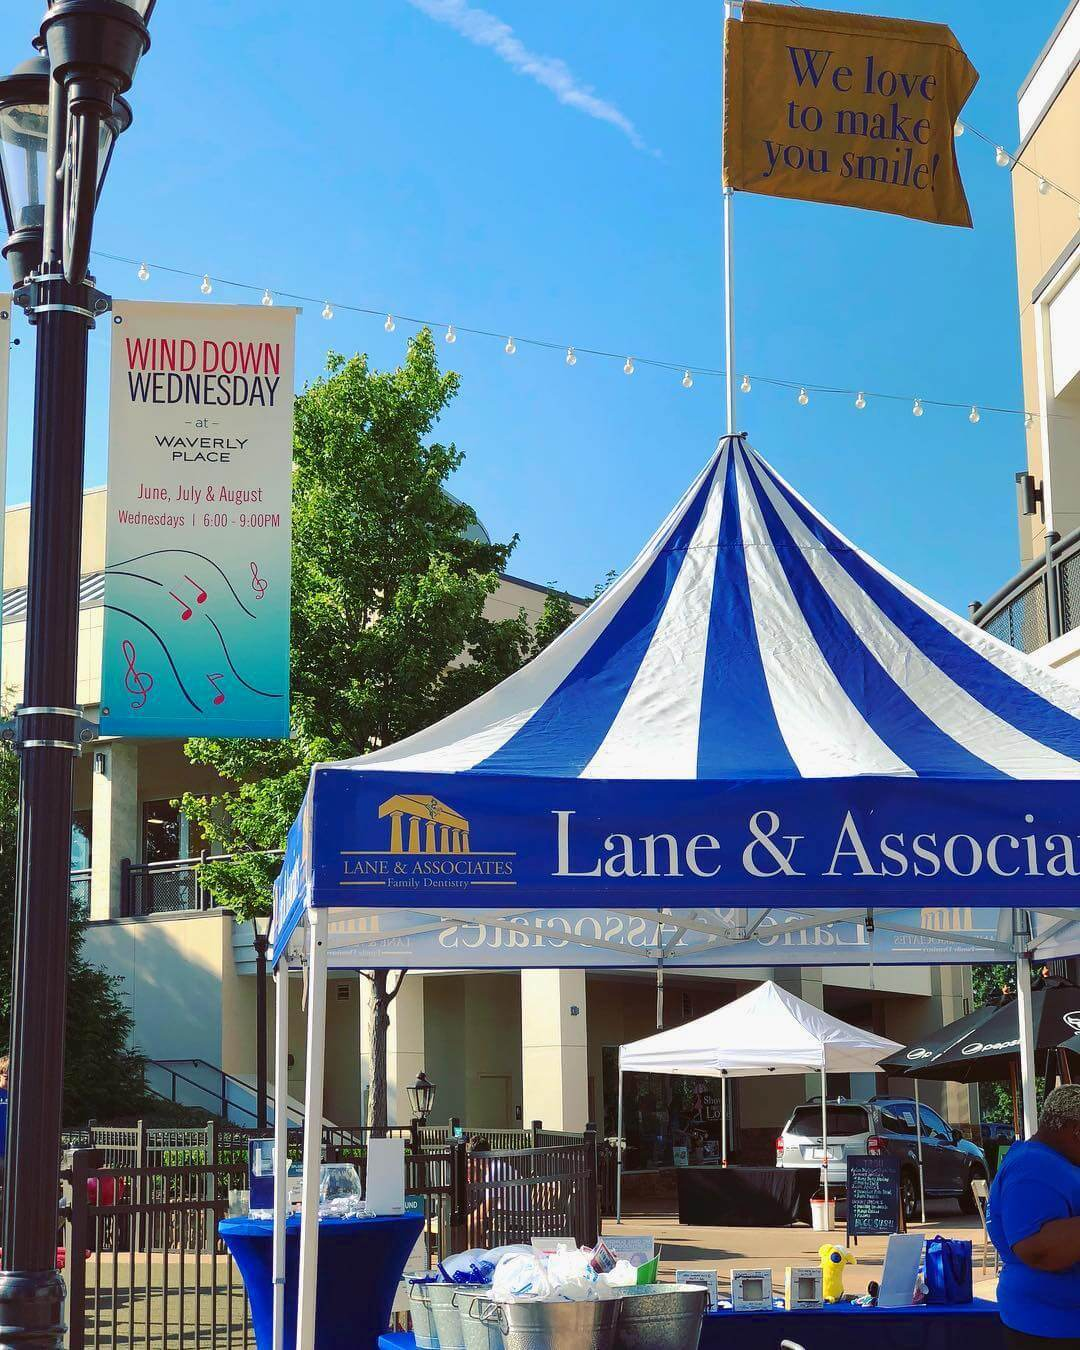 Lane and Associates Family Dentistry's Blue and White striped Tent at the Wind Down Wednesday Event in Cary